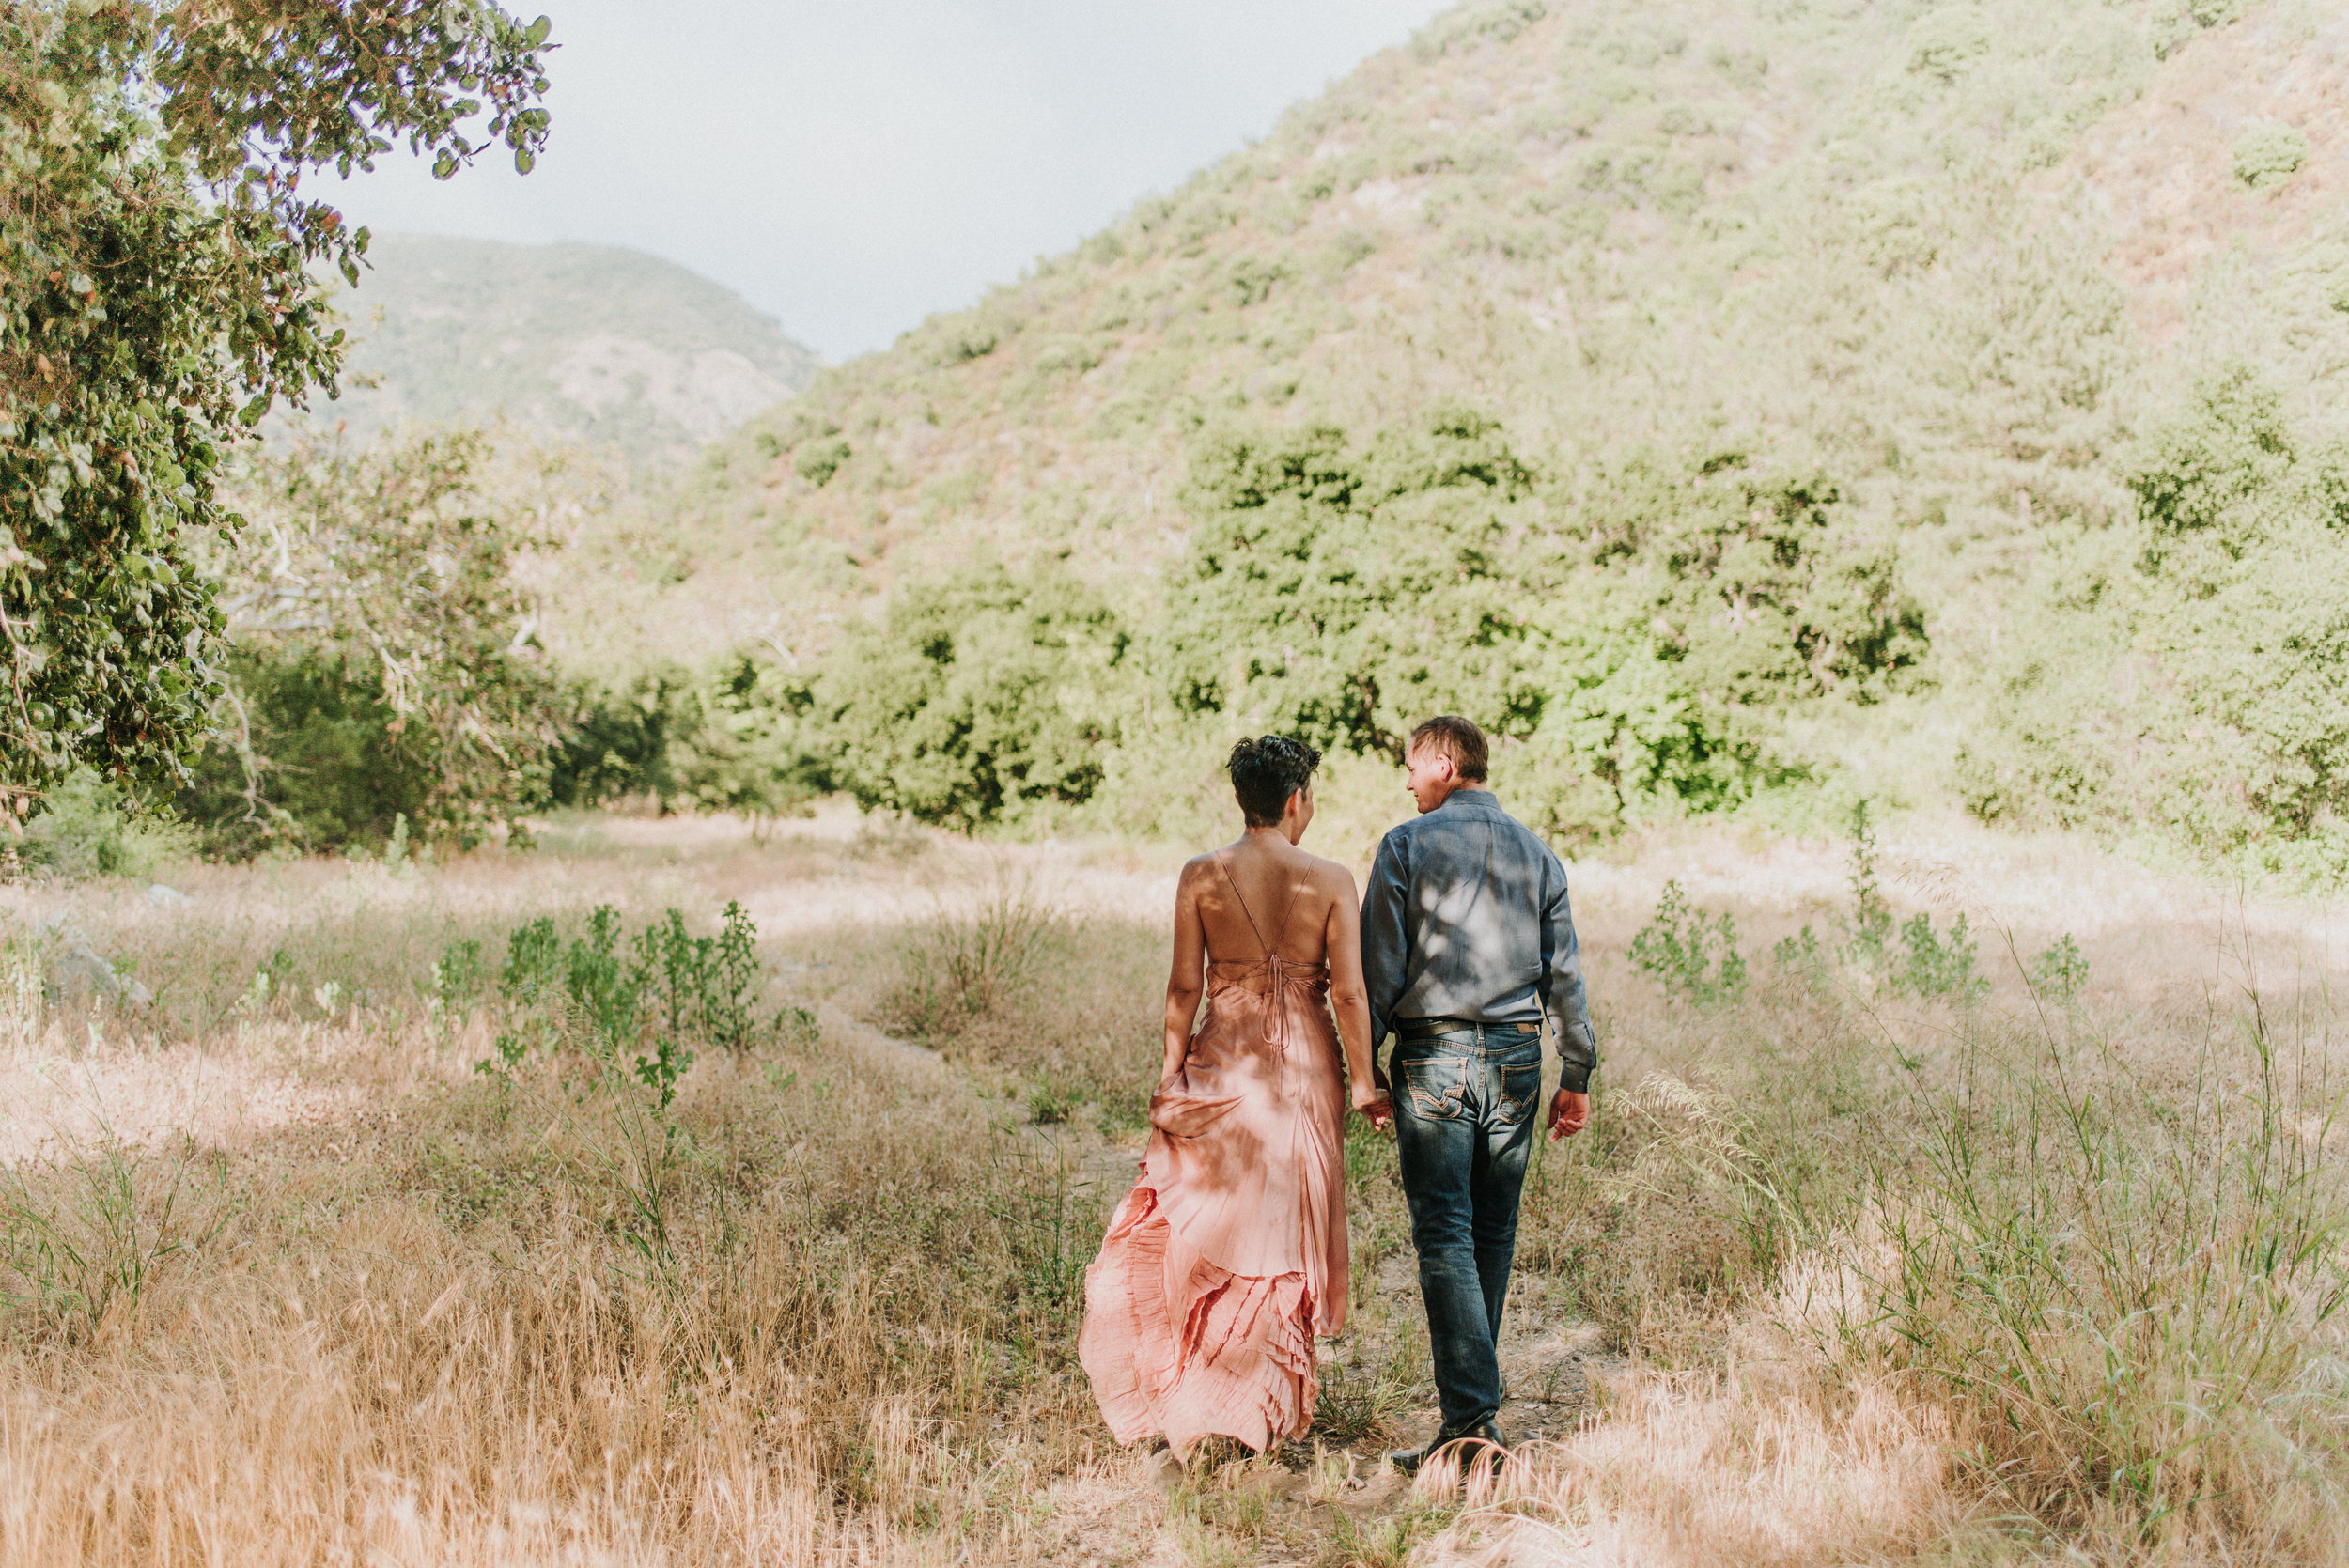 2019-06-17_Danielle_and_Brandon_-_Engaged_-_Silverado-38.jpg